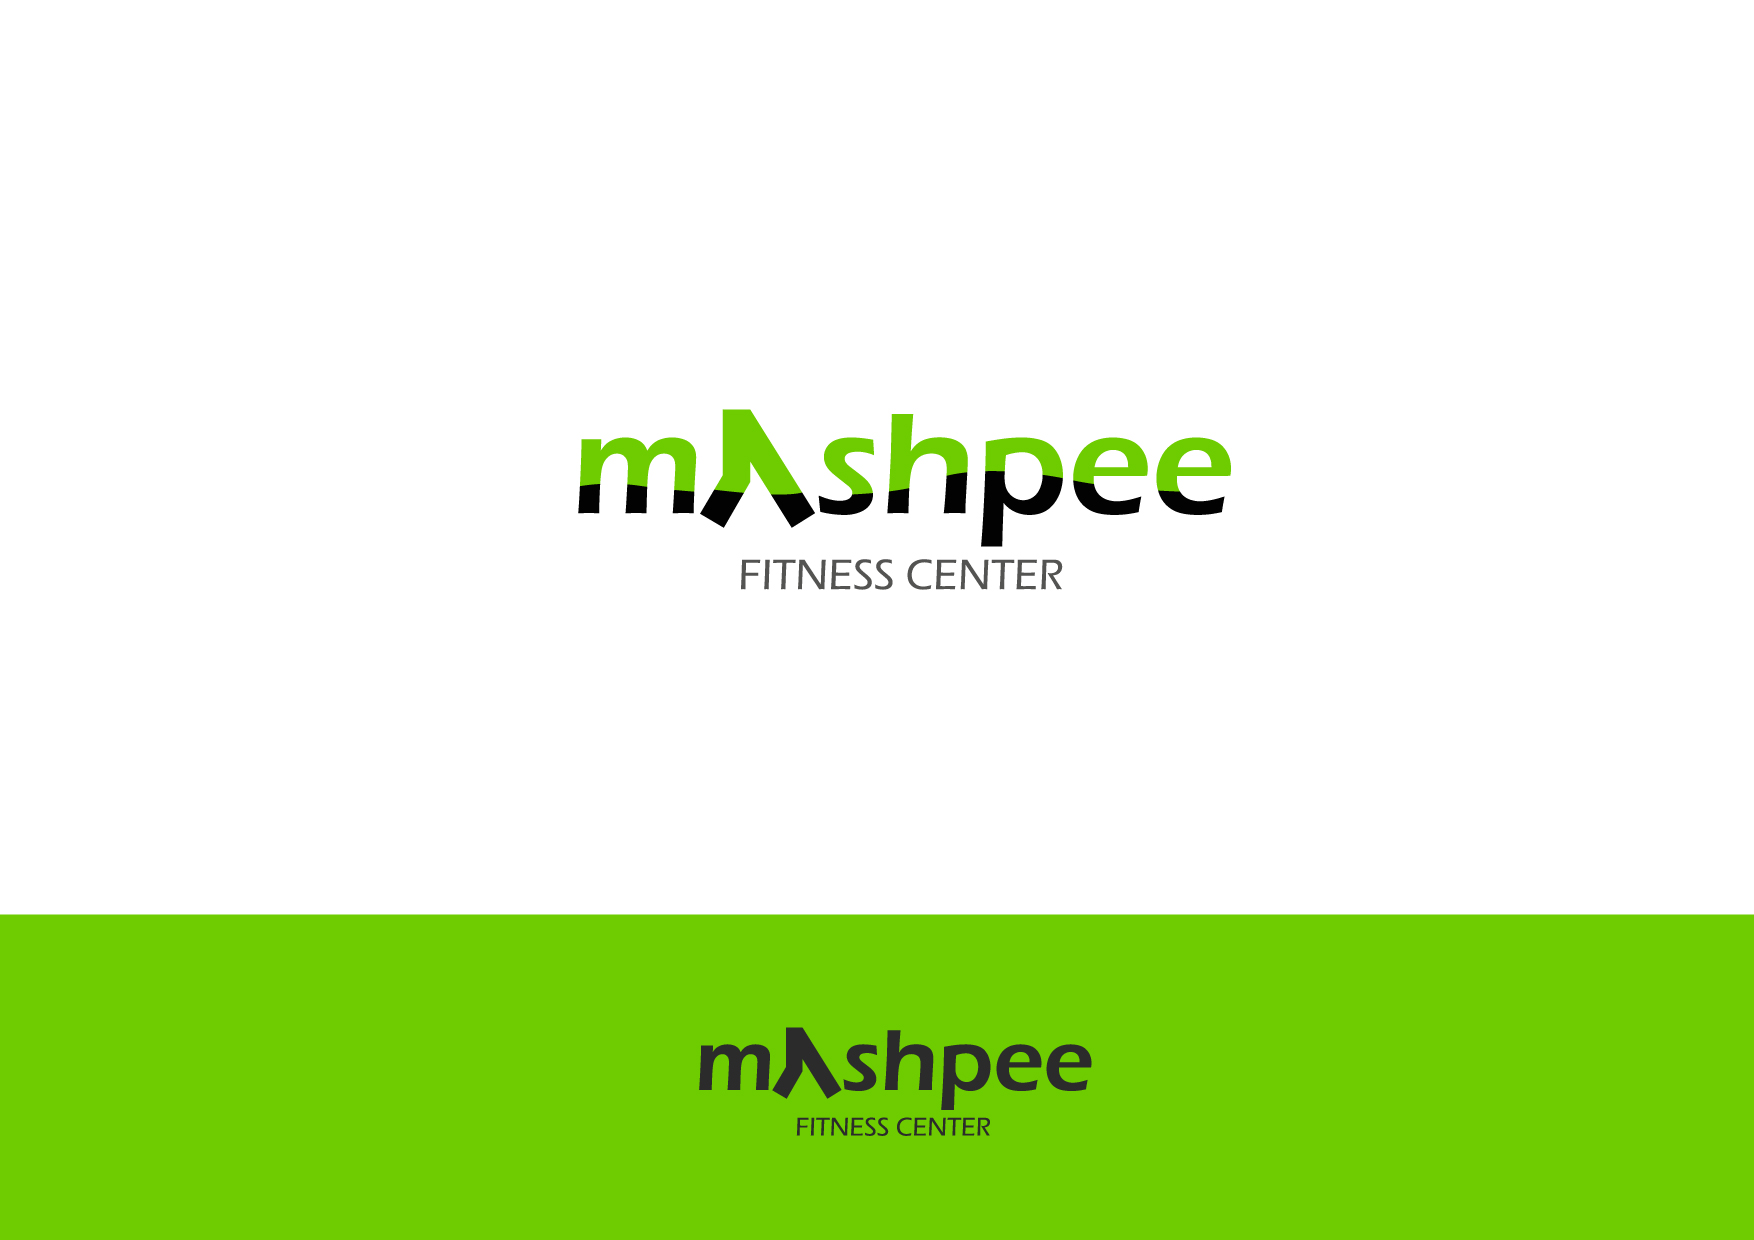 Logo Design by Osi Indra - Entry No. 92 in the Logo Design Contest New Logo Design for Mashpee Fitness Center.